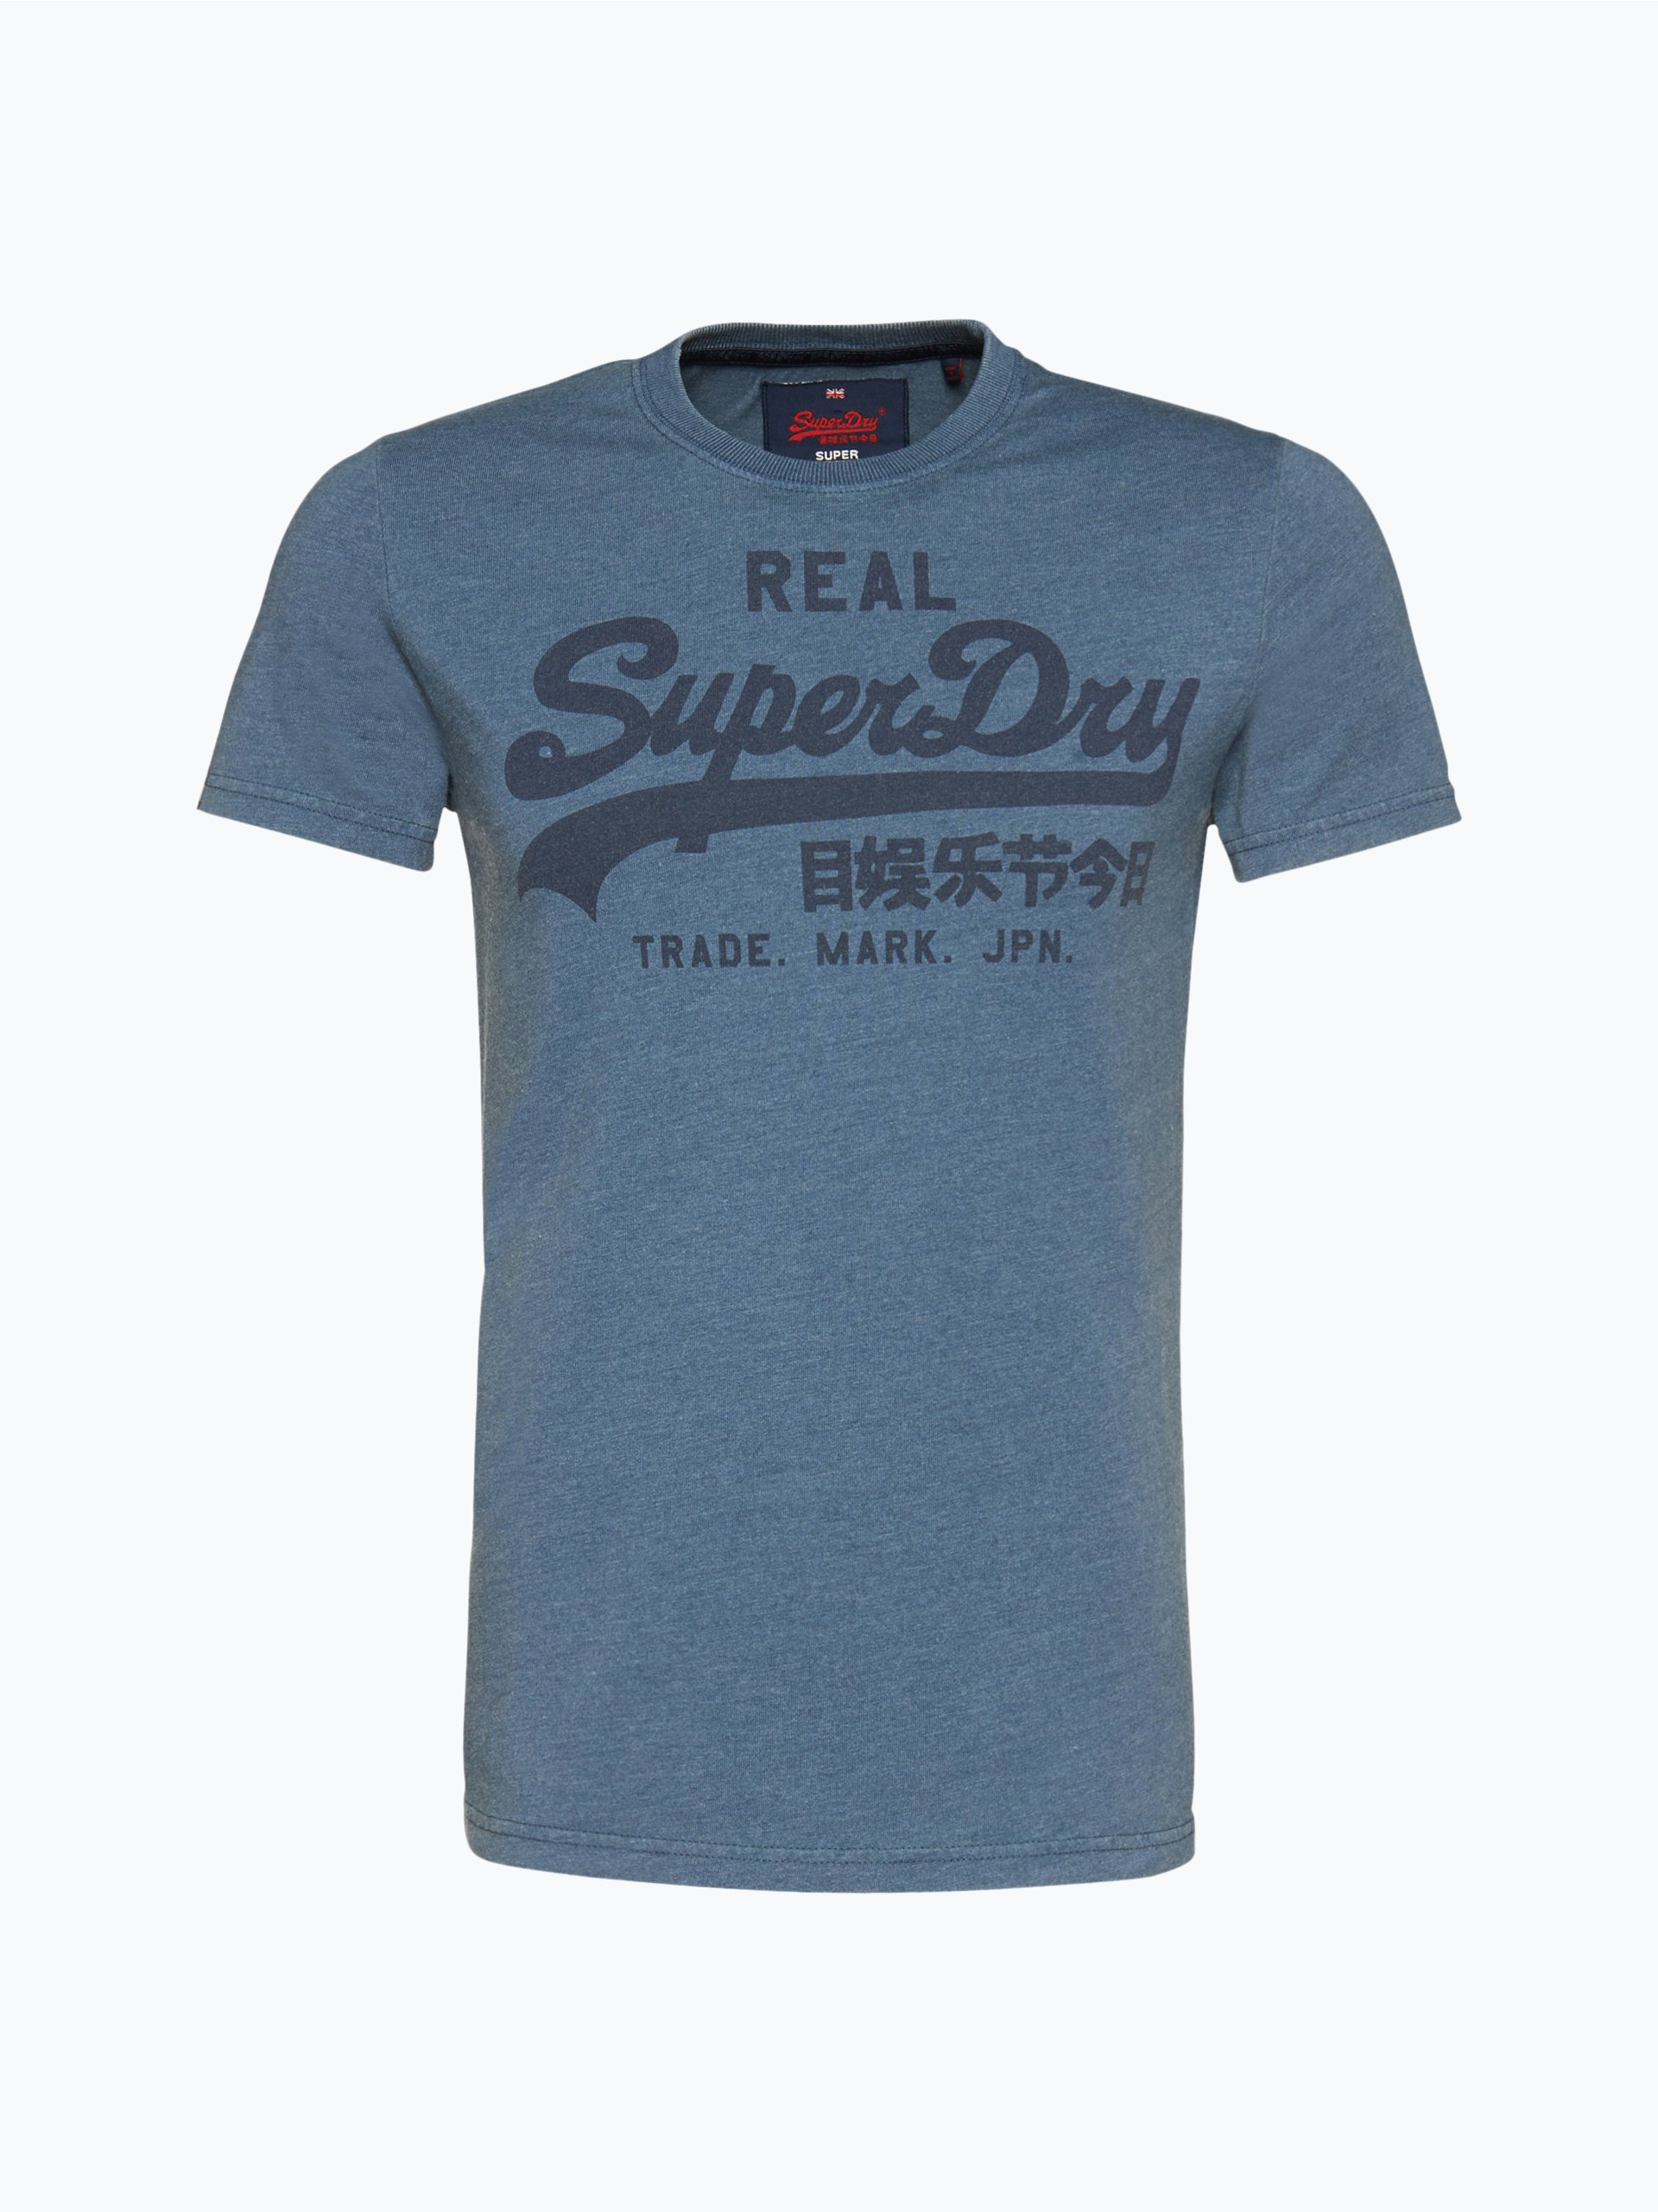 superdry herren t shirt hellblau gemustert online kaufen. Black Bedroom Furniture Sets. Home Design Ideas